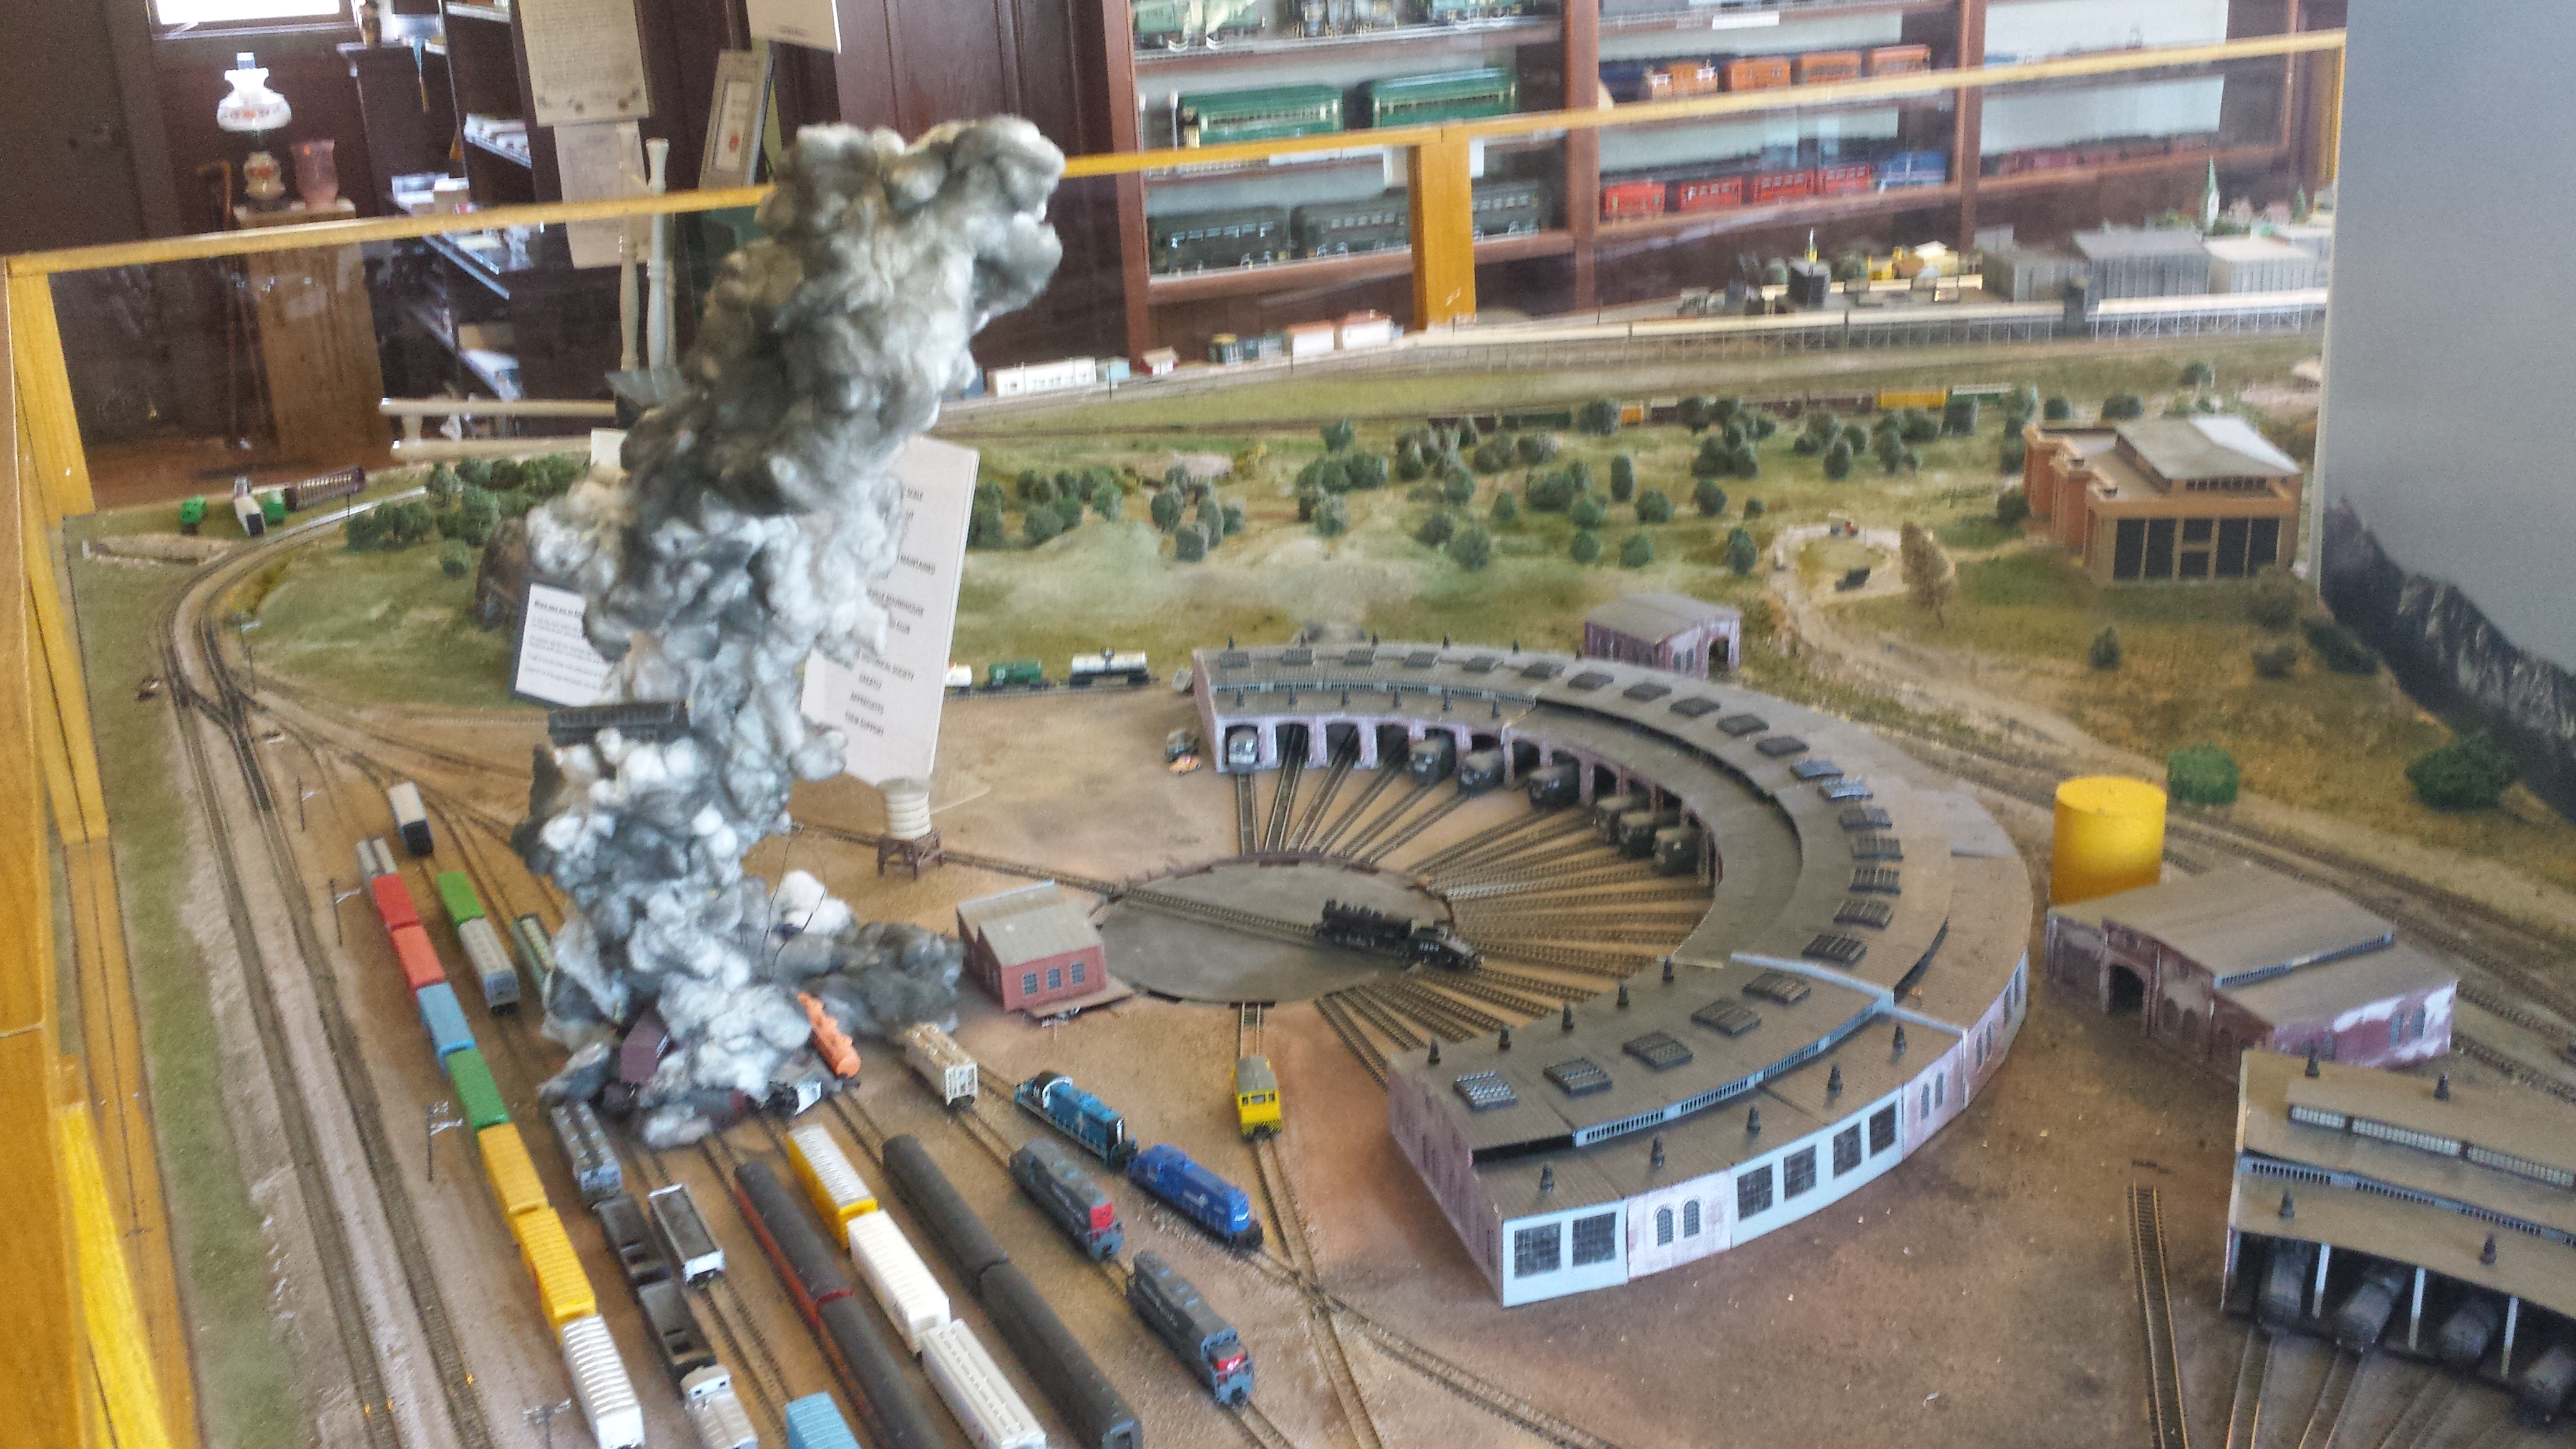 Carnegie Library Museum Train Layout